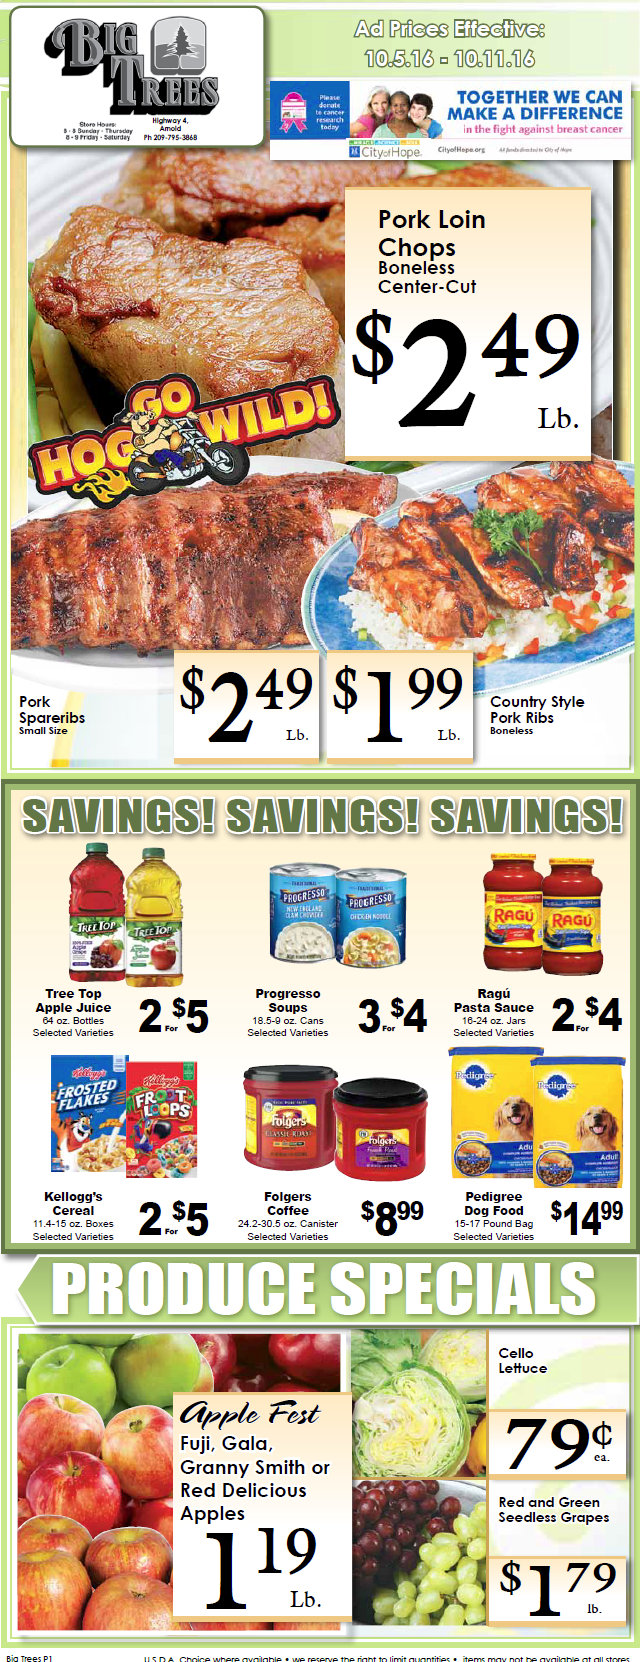 Big Trees Market Weekly Specials & Grocery Ads Through October 11th